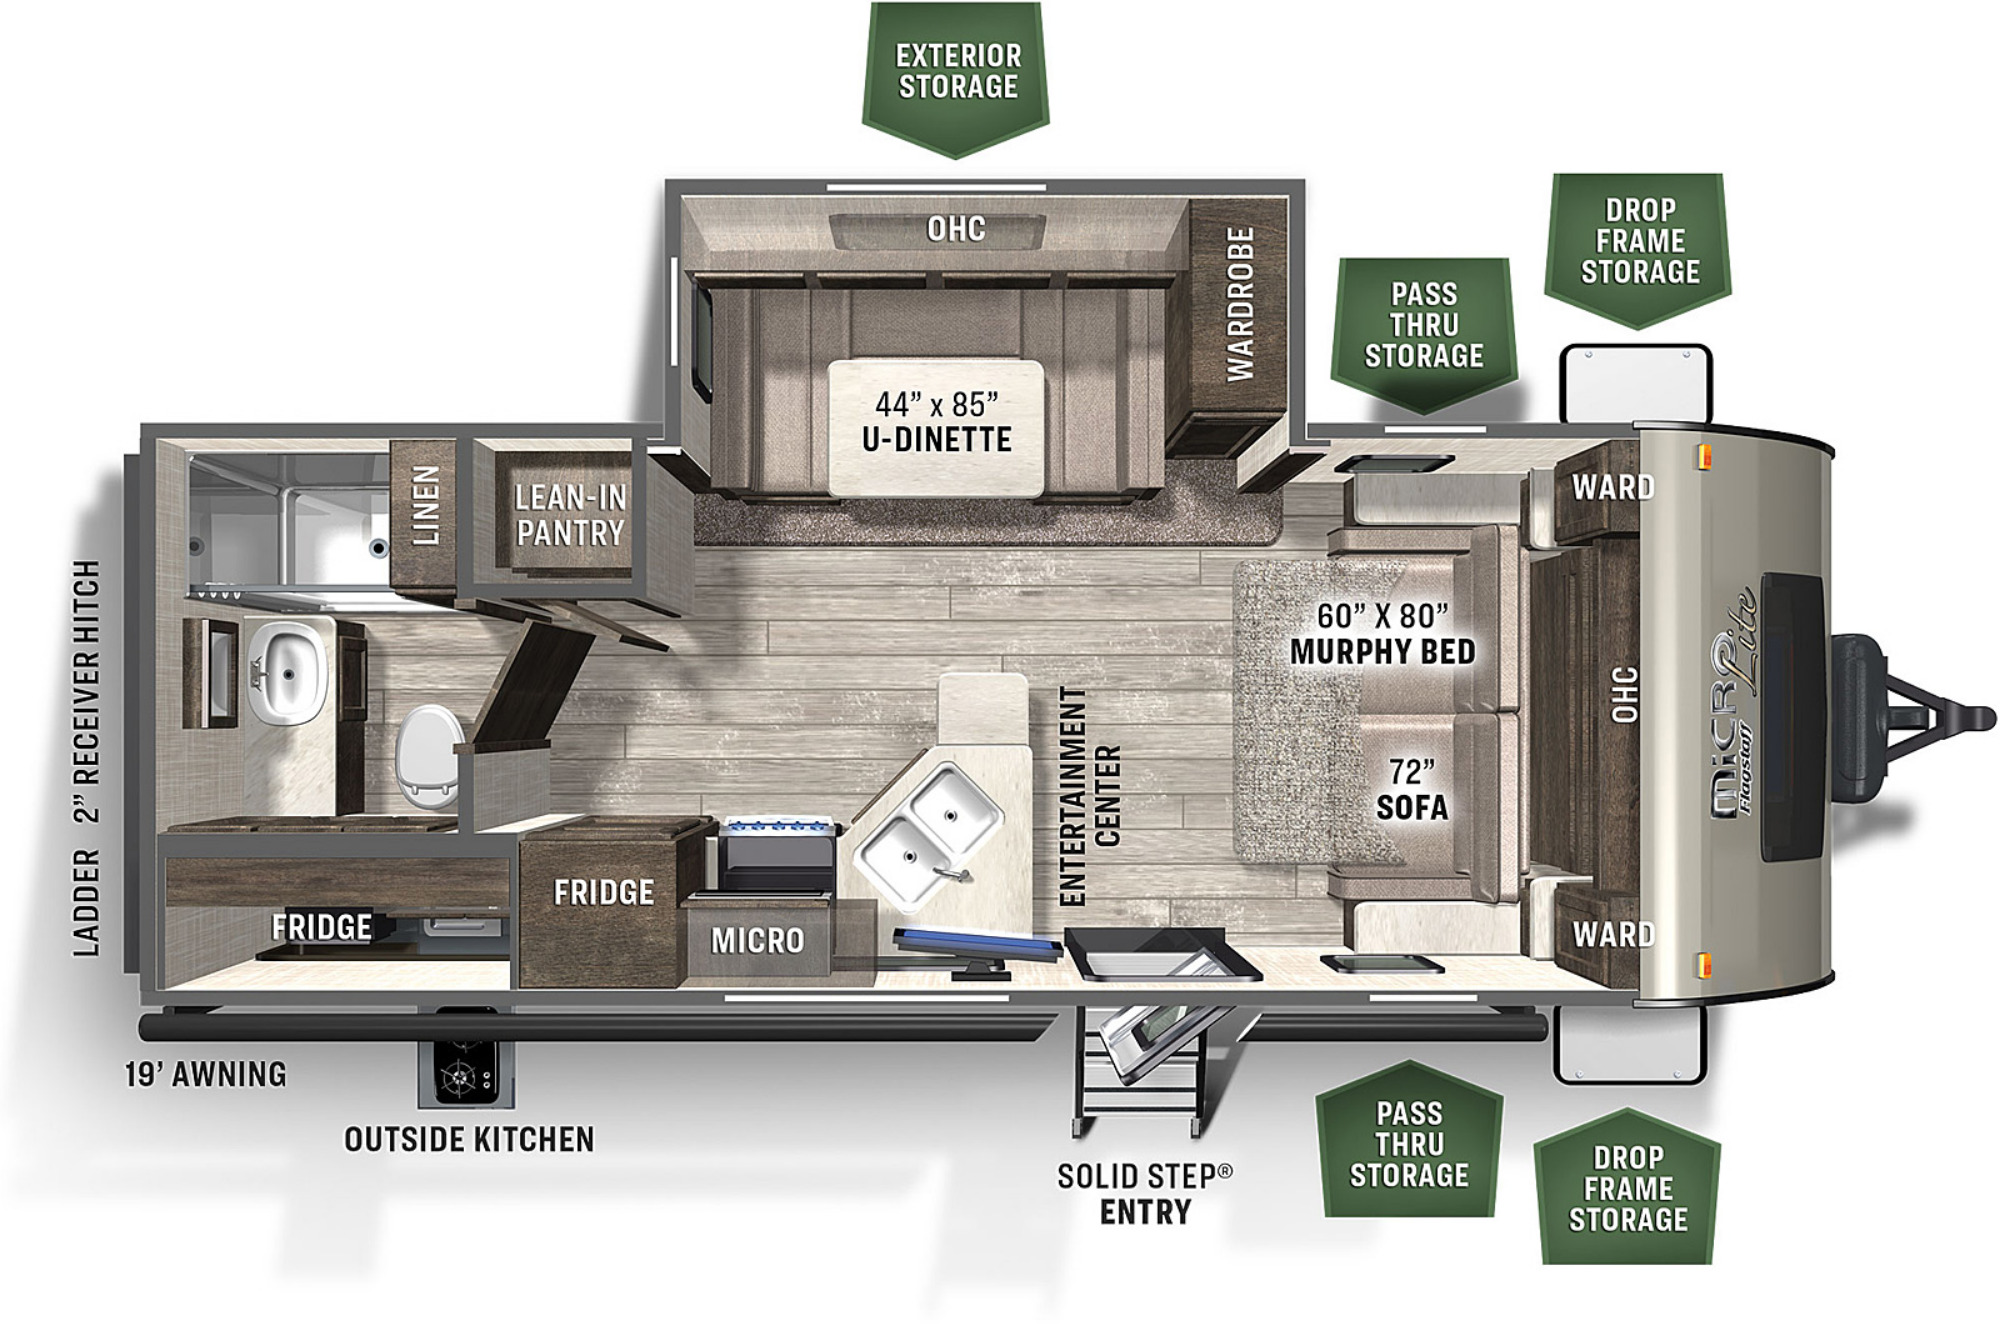 View Floor Plan for 2021 FOREST RIVER FLAGSTAFF MICRO LITE 25BDS